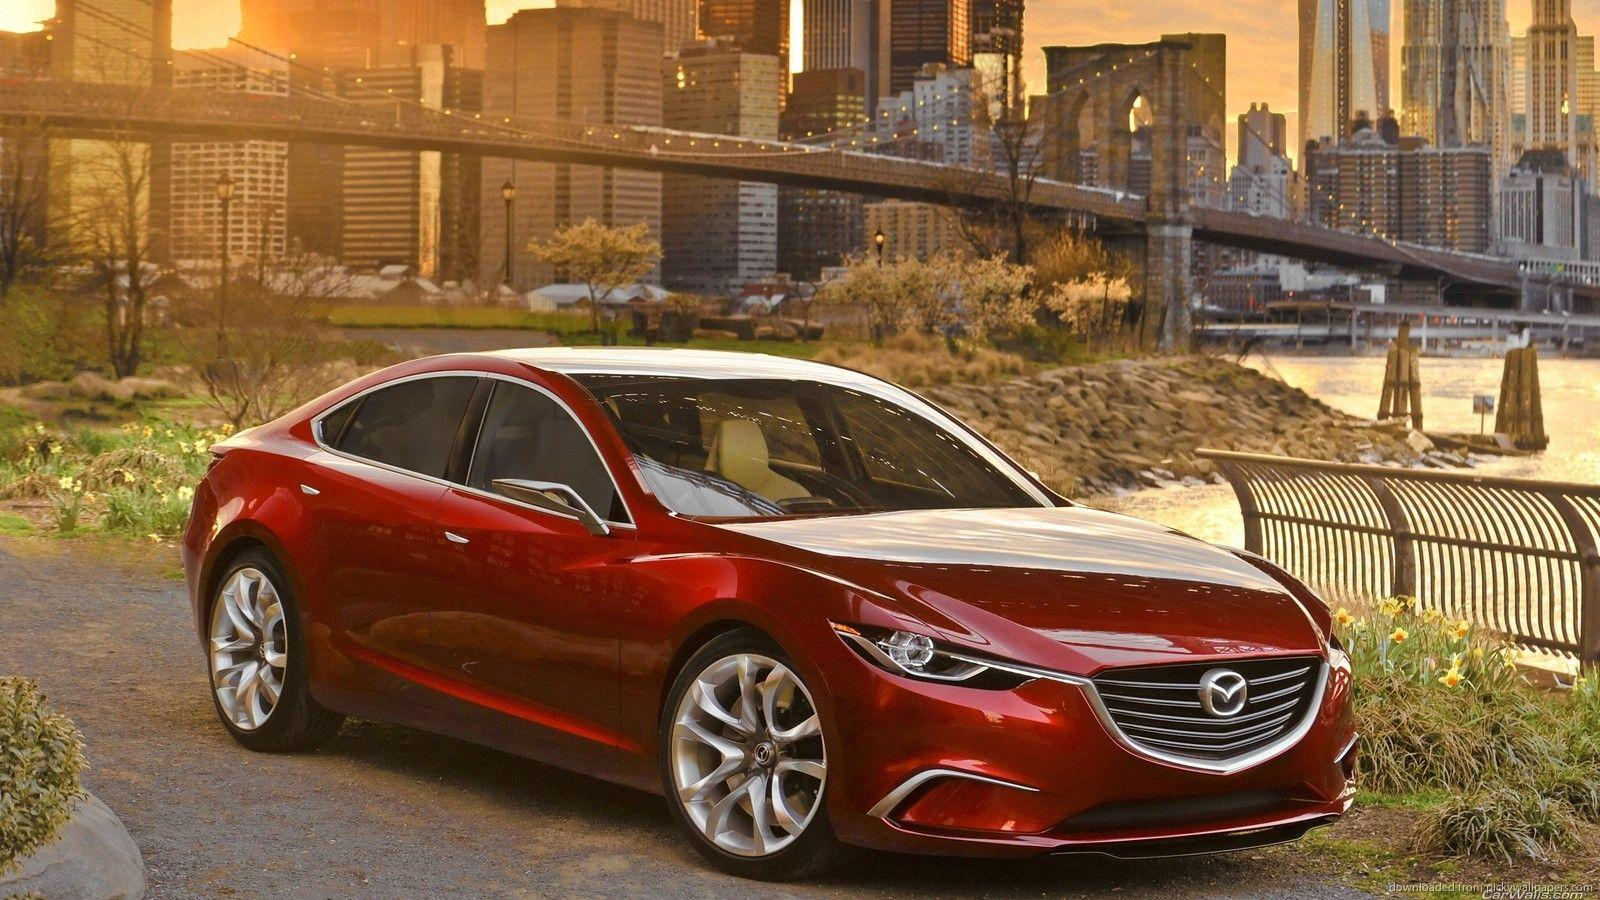 Download 1600x900 Mazda 6 New York Wallpaper